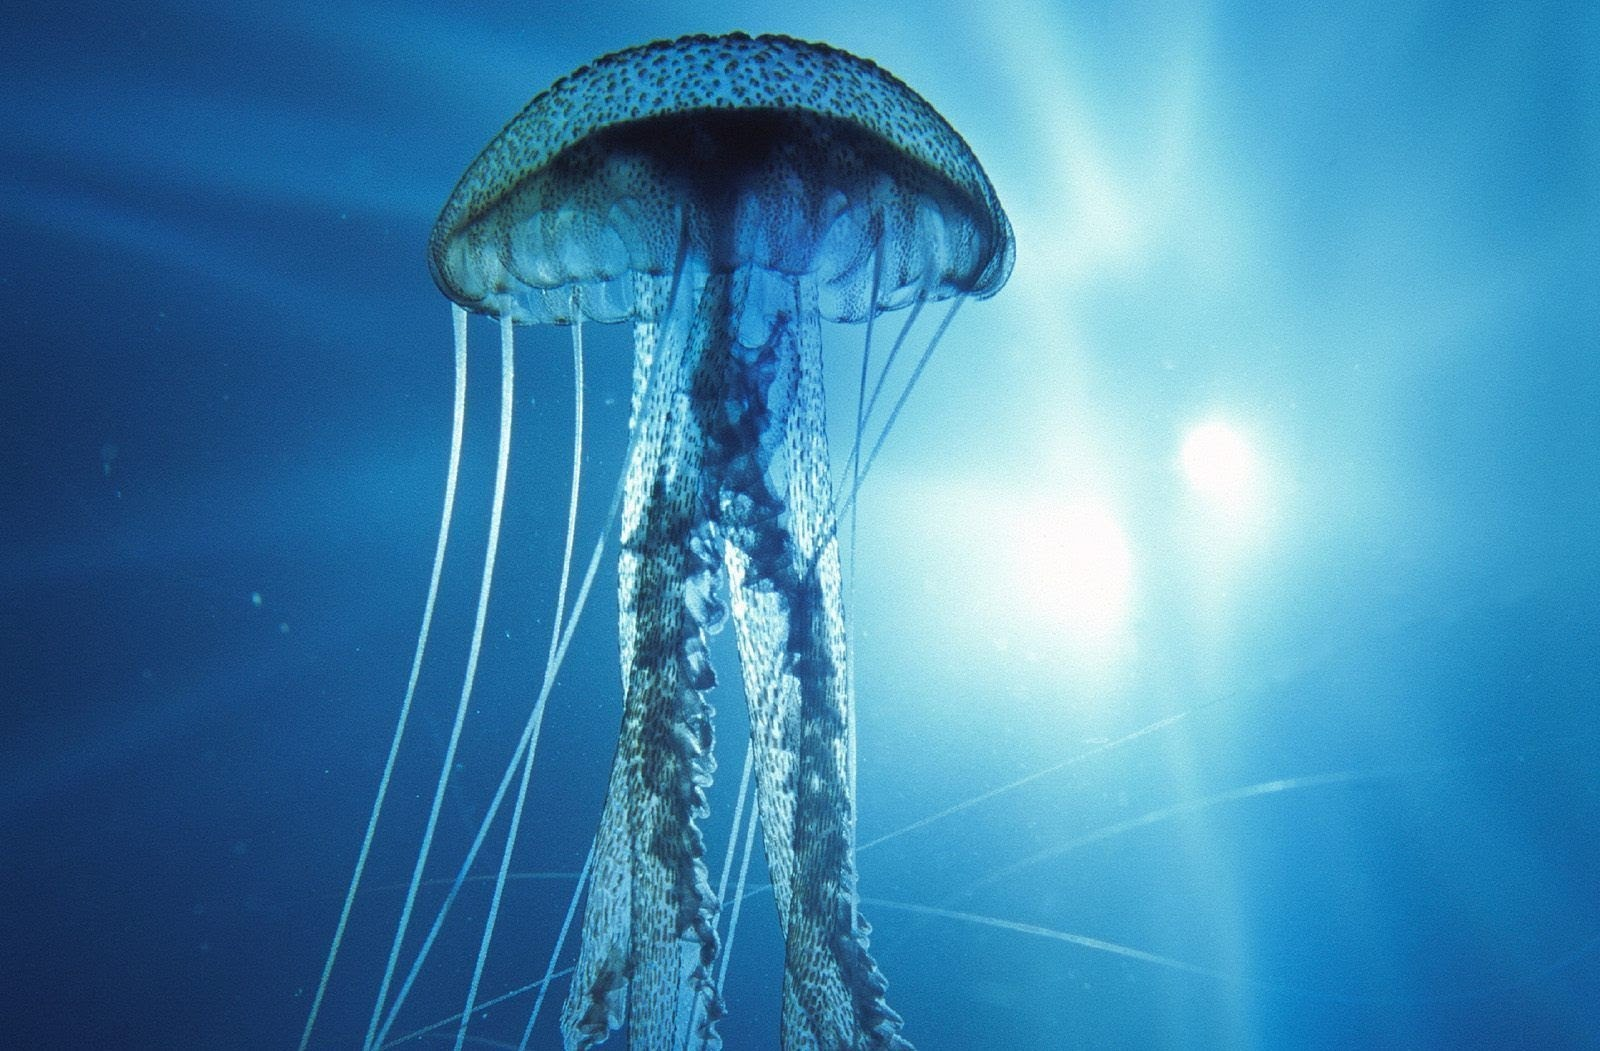 The Immortal Jellyfish,  Turritopsis dohrnii, which can reverse the life cycle process